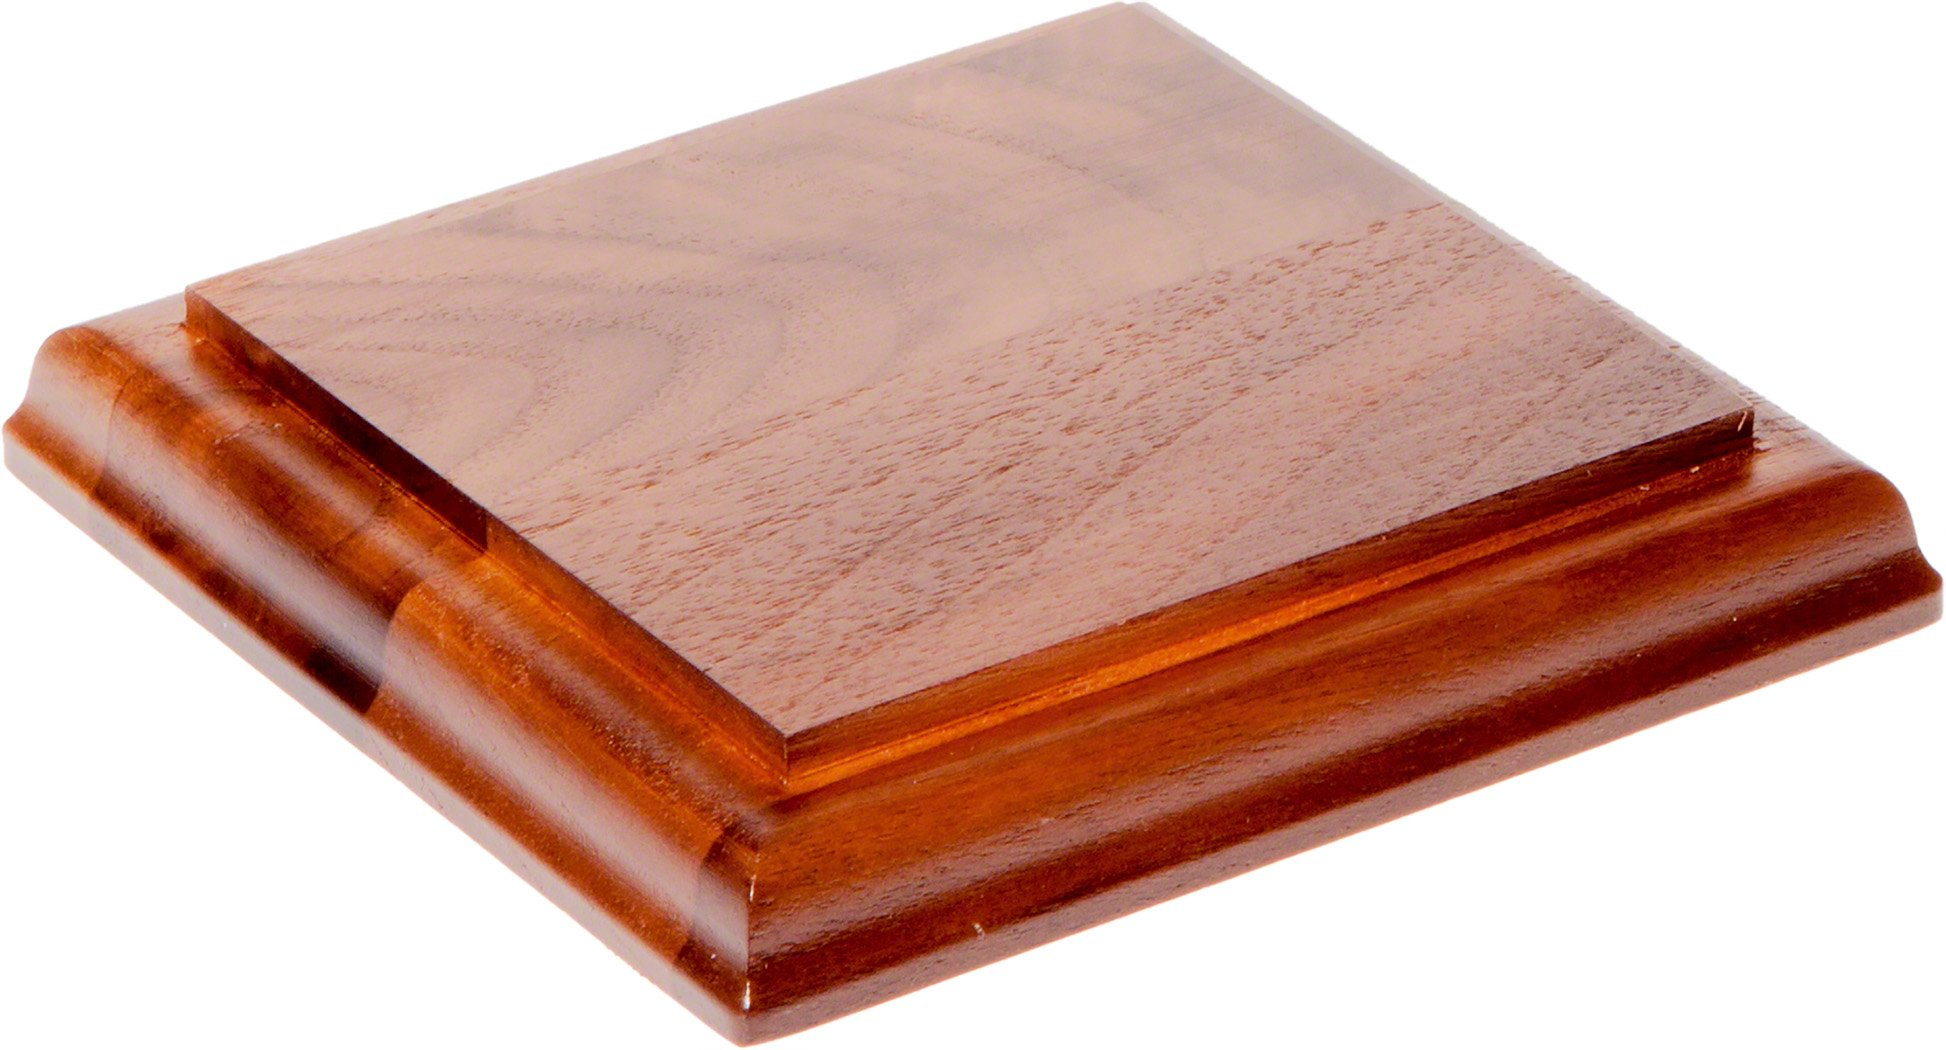 Plymor Brand Solid Walnut Square Wood Display Base with Ogee Edge.75 H x 4'' W x 4'' D by Plymor (Image #1)